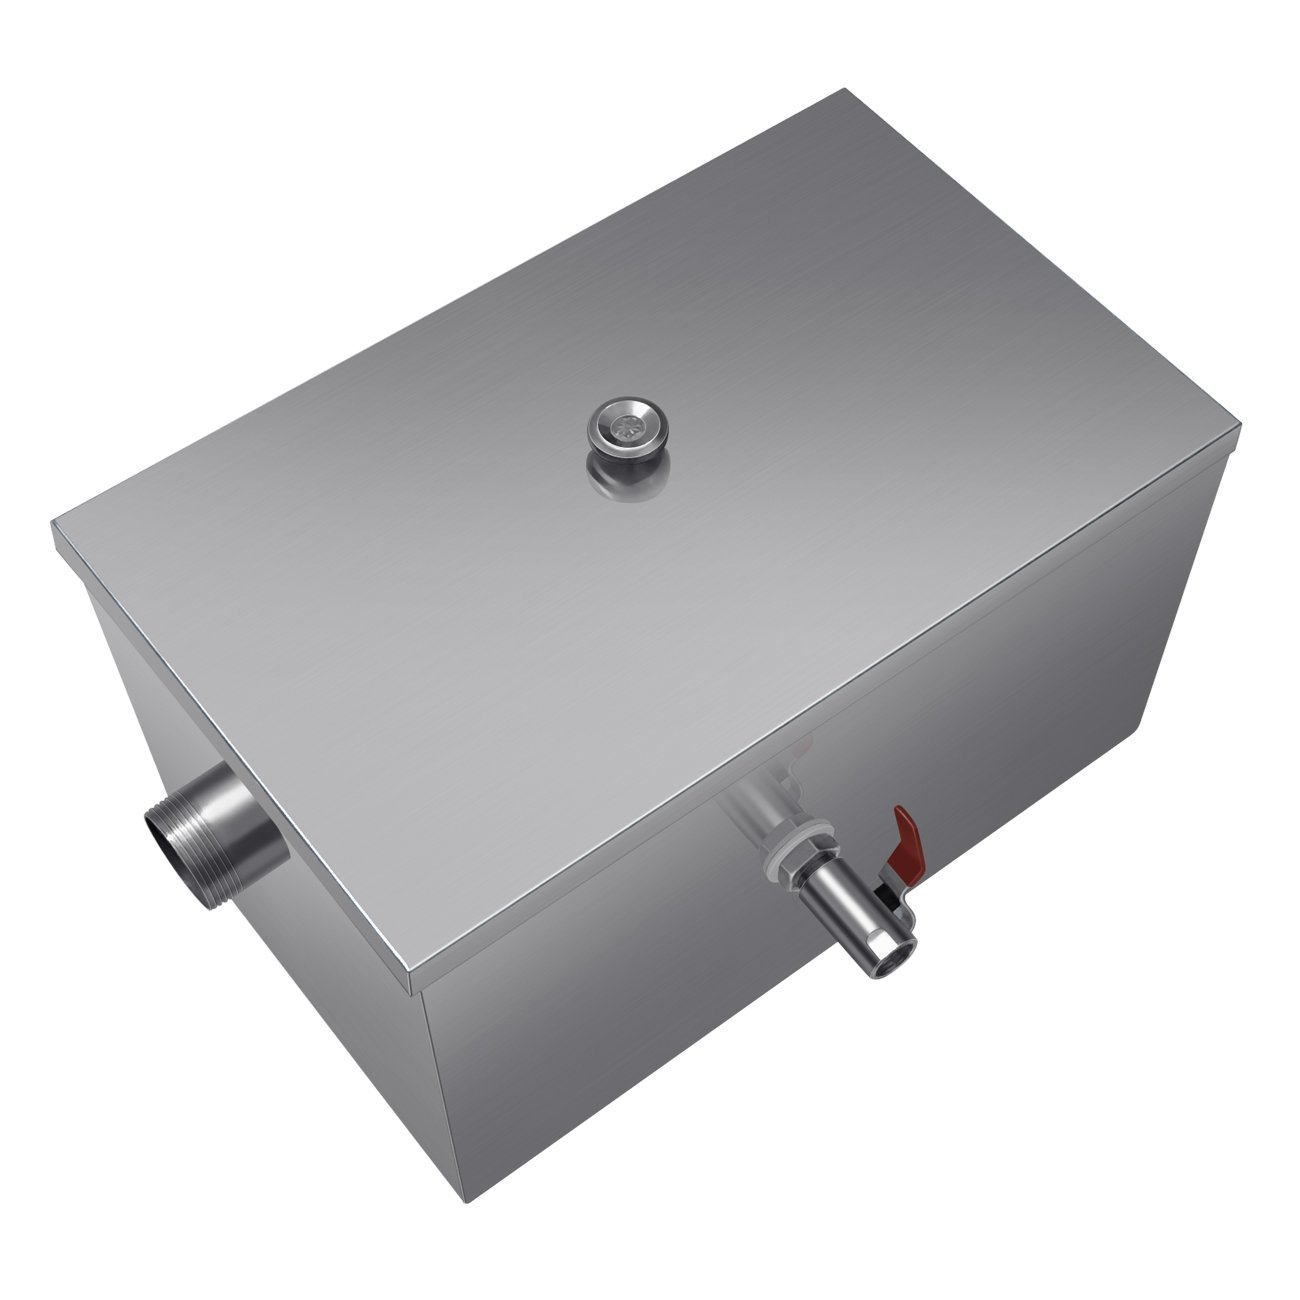 Commercial 8LB Grease Trap 5GPM Stainless Steel for Restaurant Kitchen